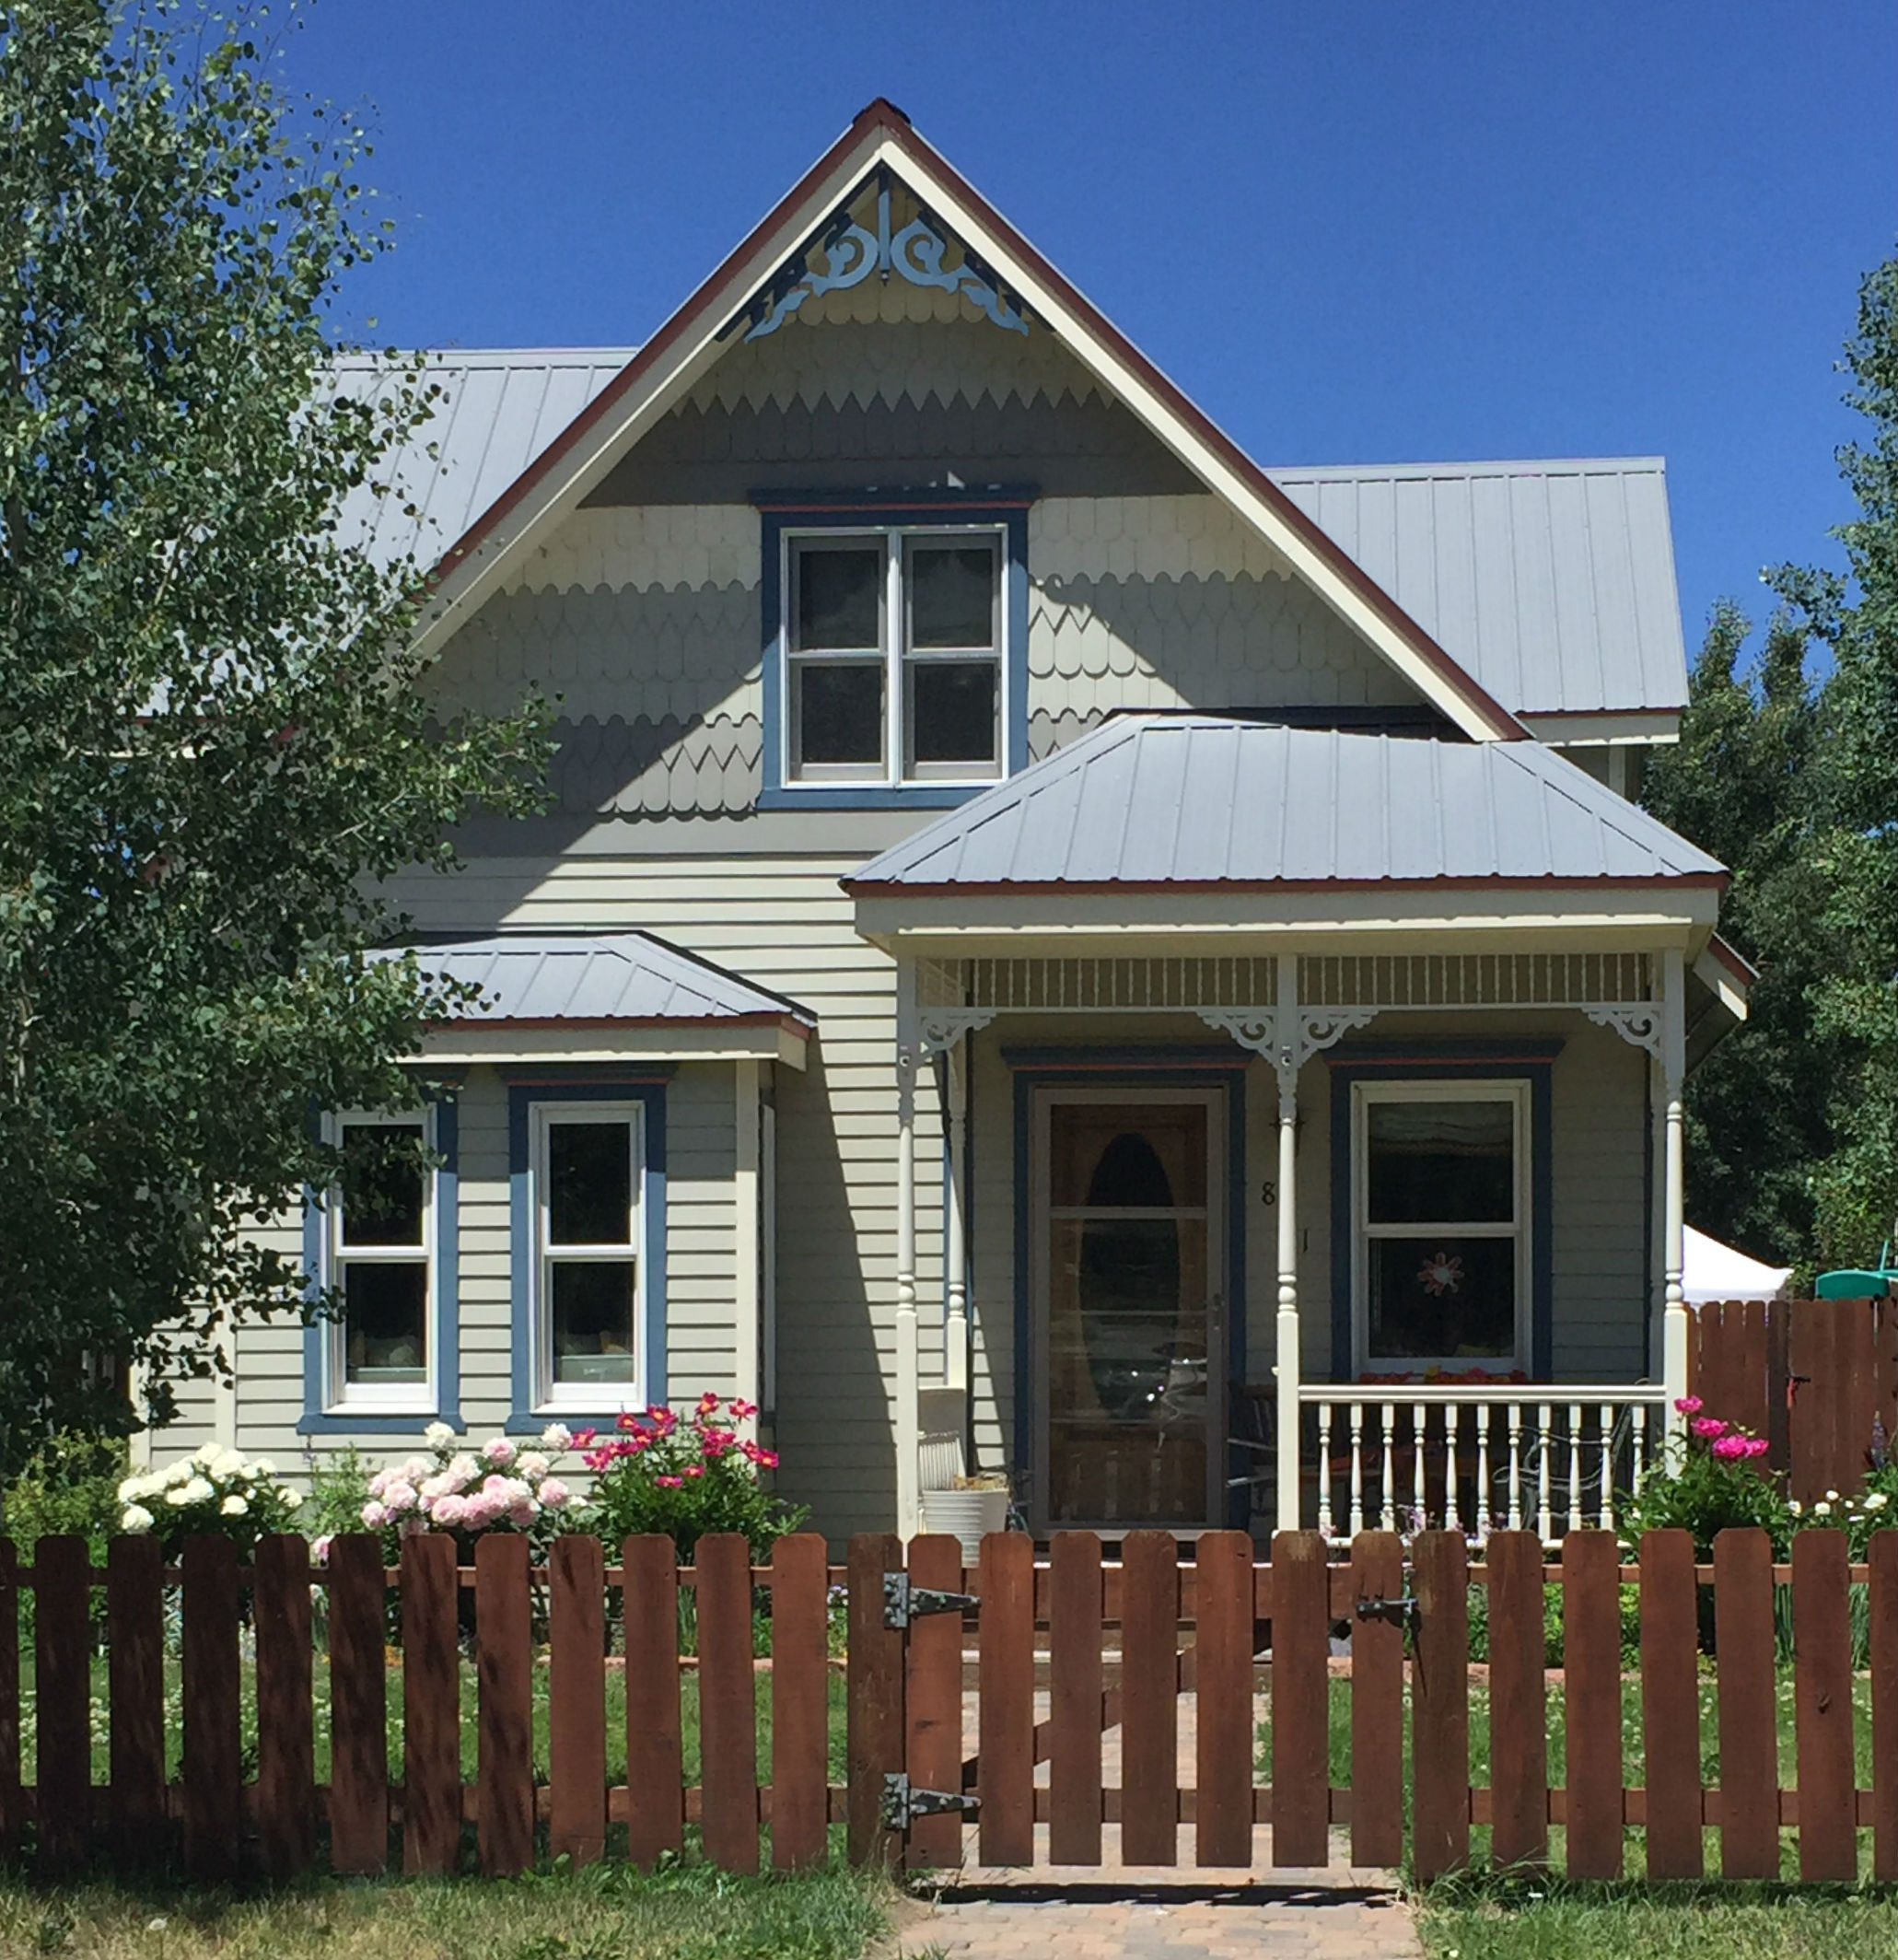 crested-butte-colorful-house-5